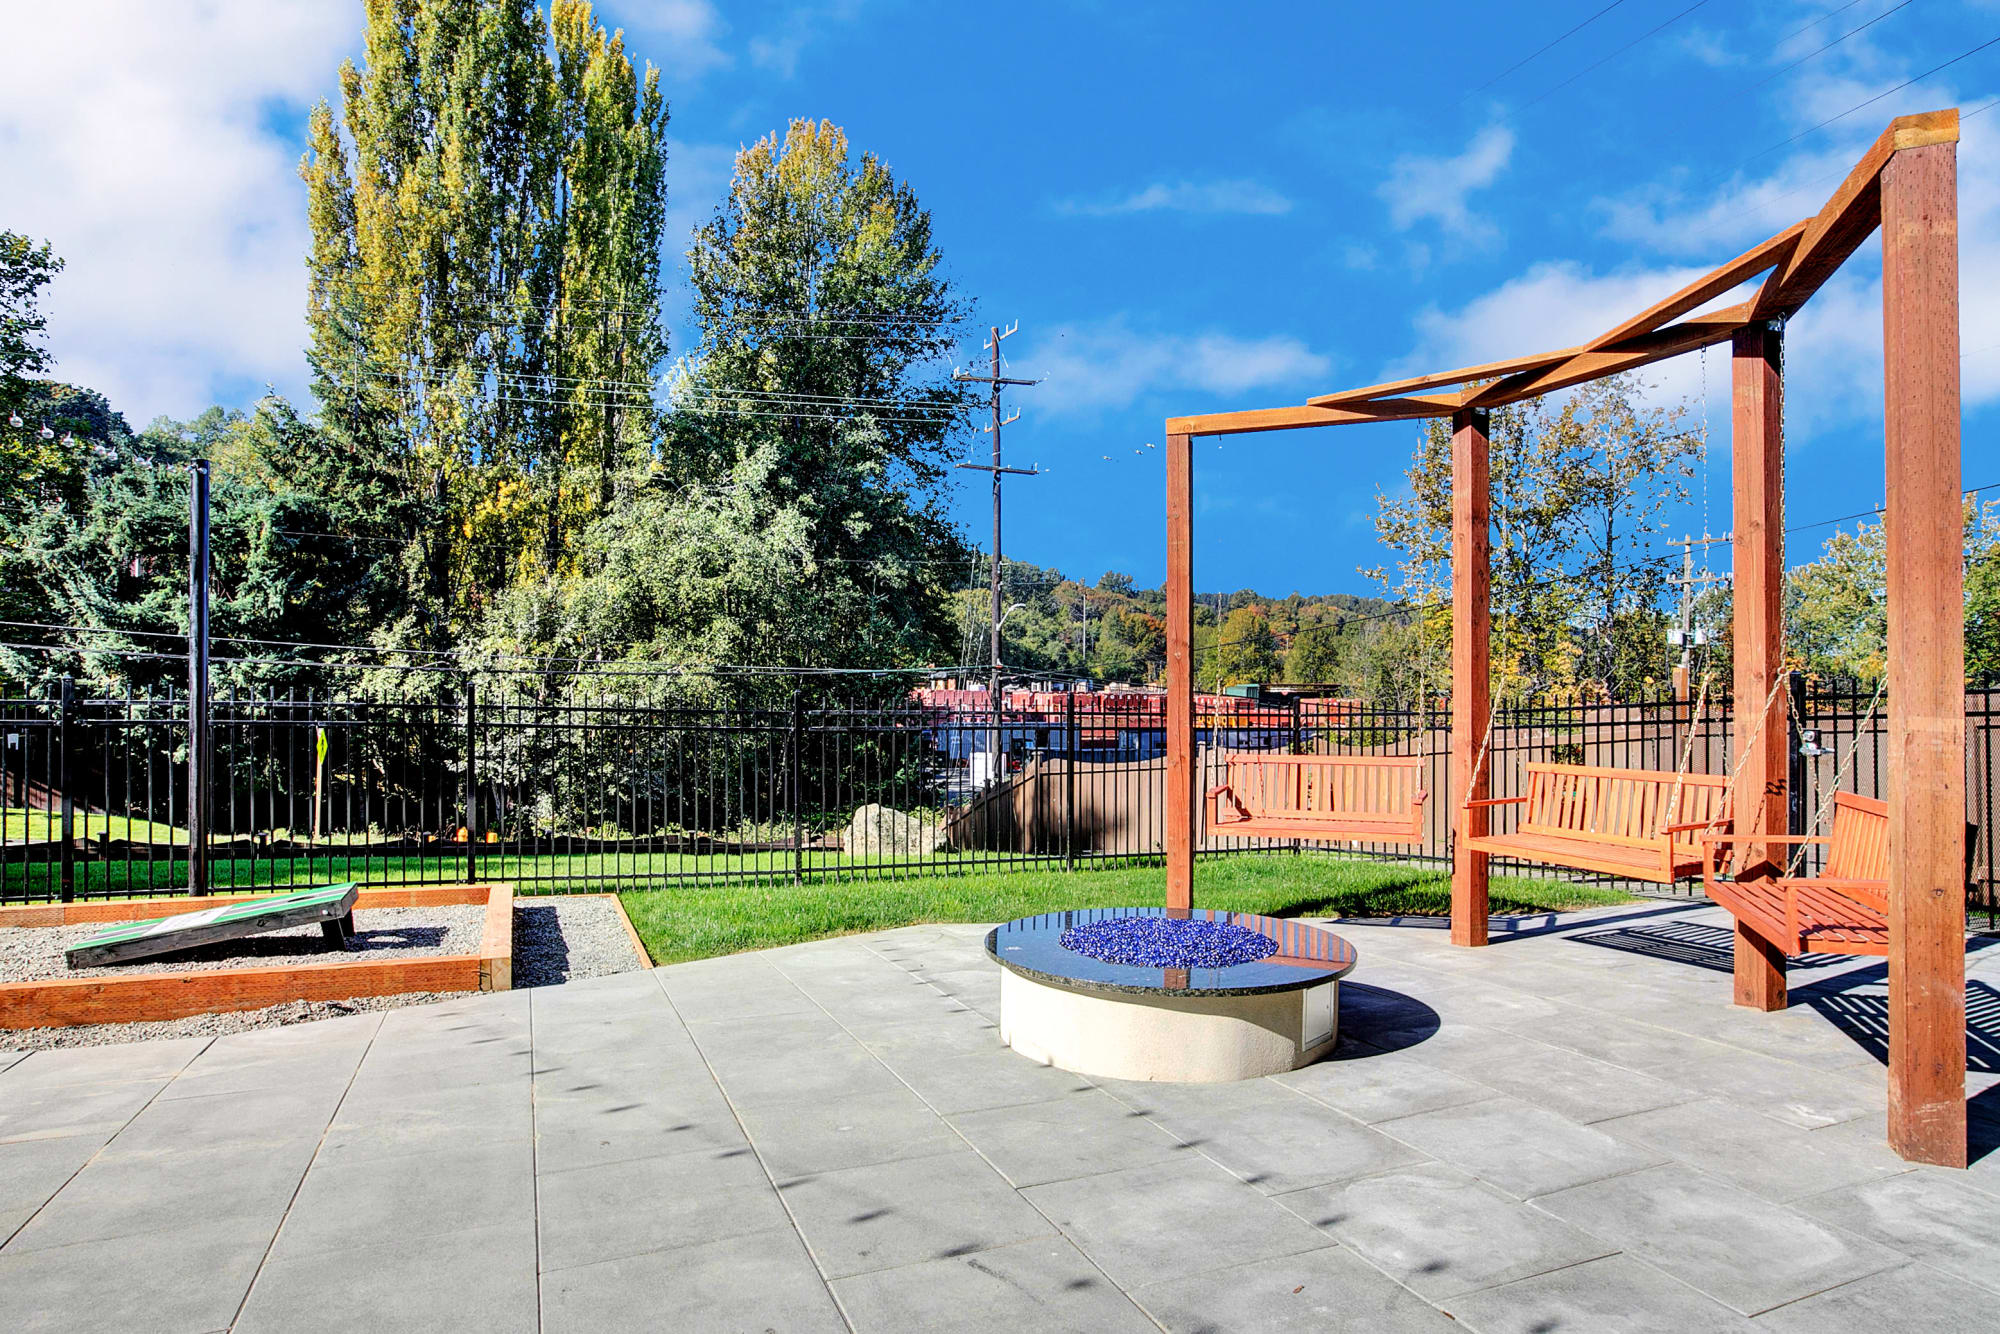 Corn hole courts near the fire pit lounge area at Park South Apartments in Seattle, Washington